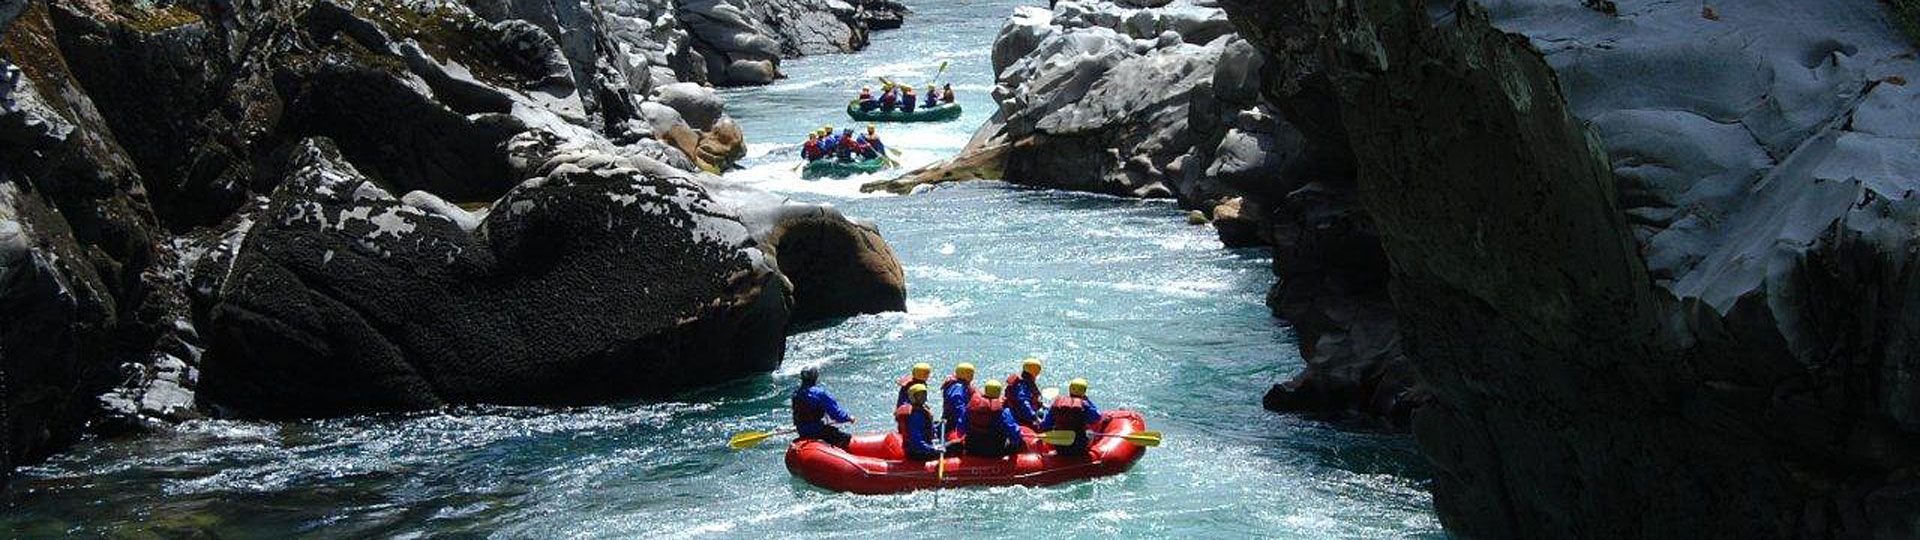 Extremo Sur - River Manso Expedition